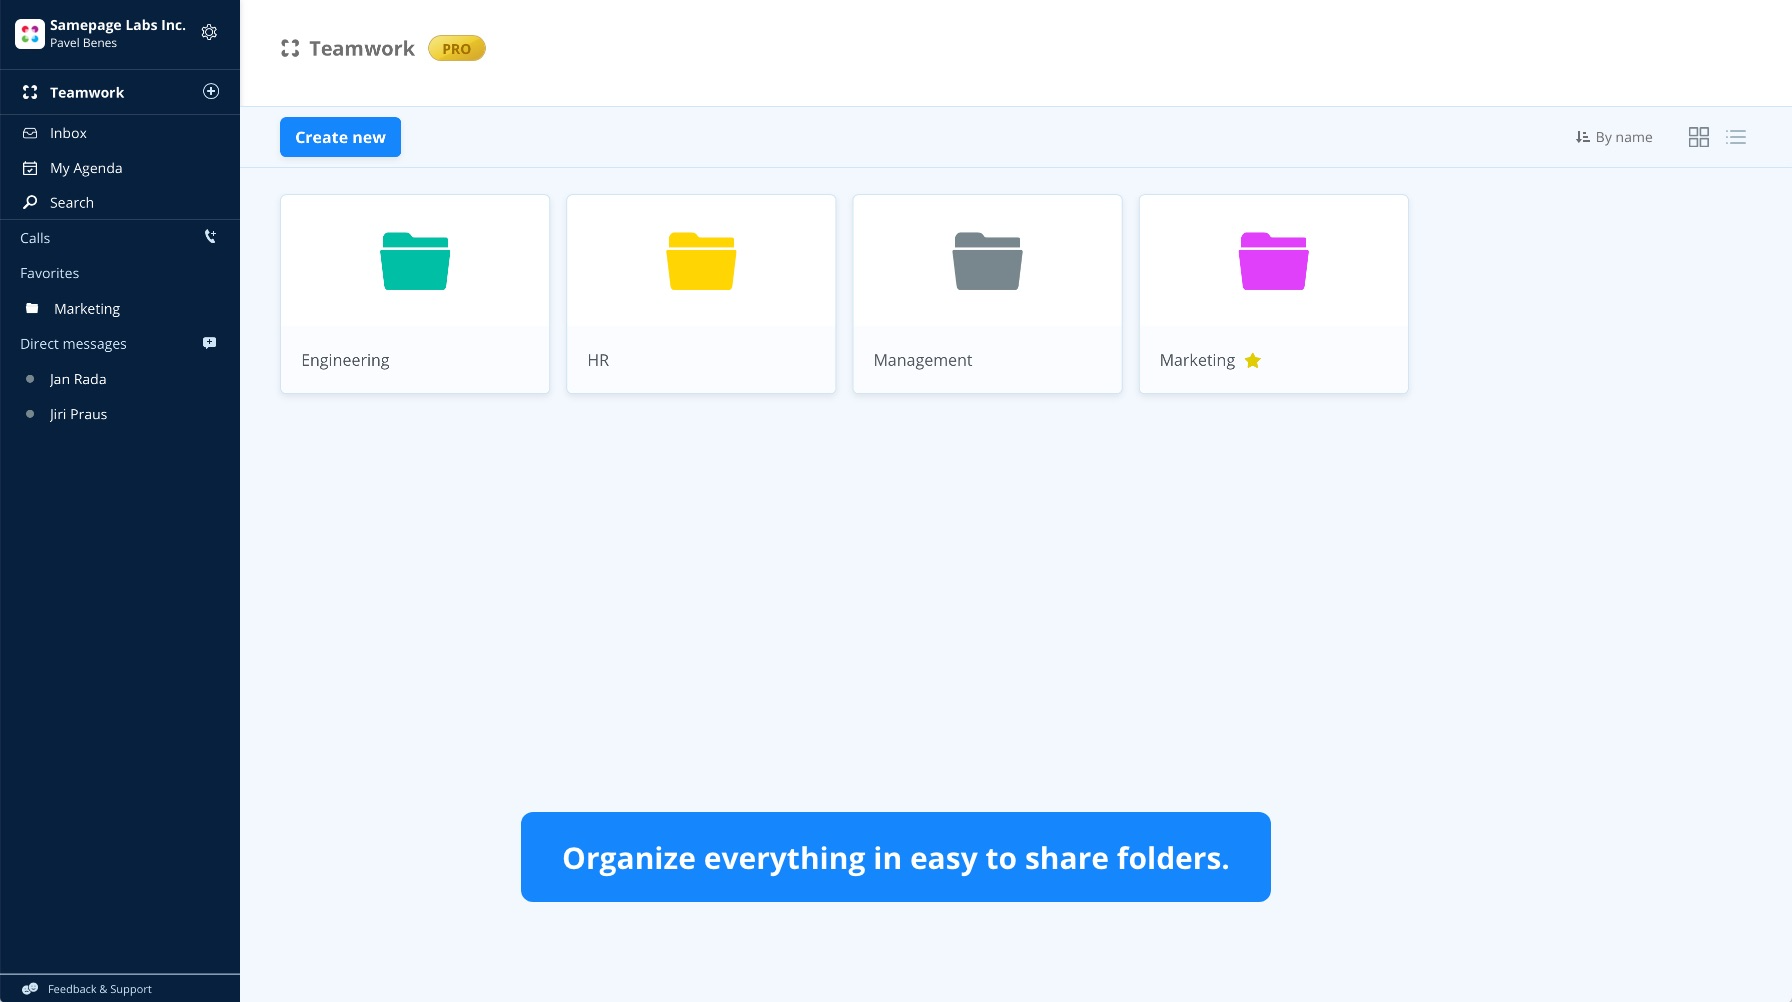 Organize everything in a familiar folder structure. Share different folders with different parts of your company.